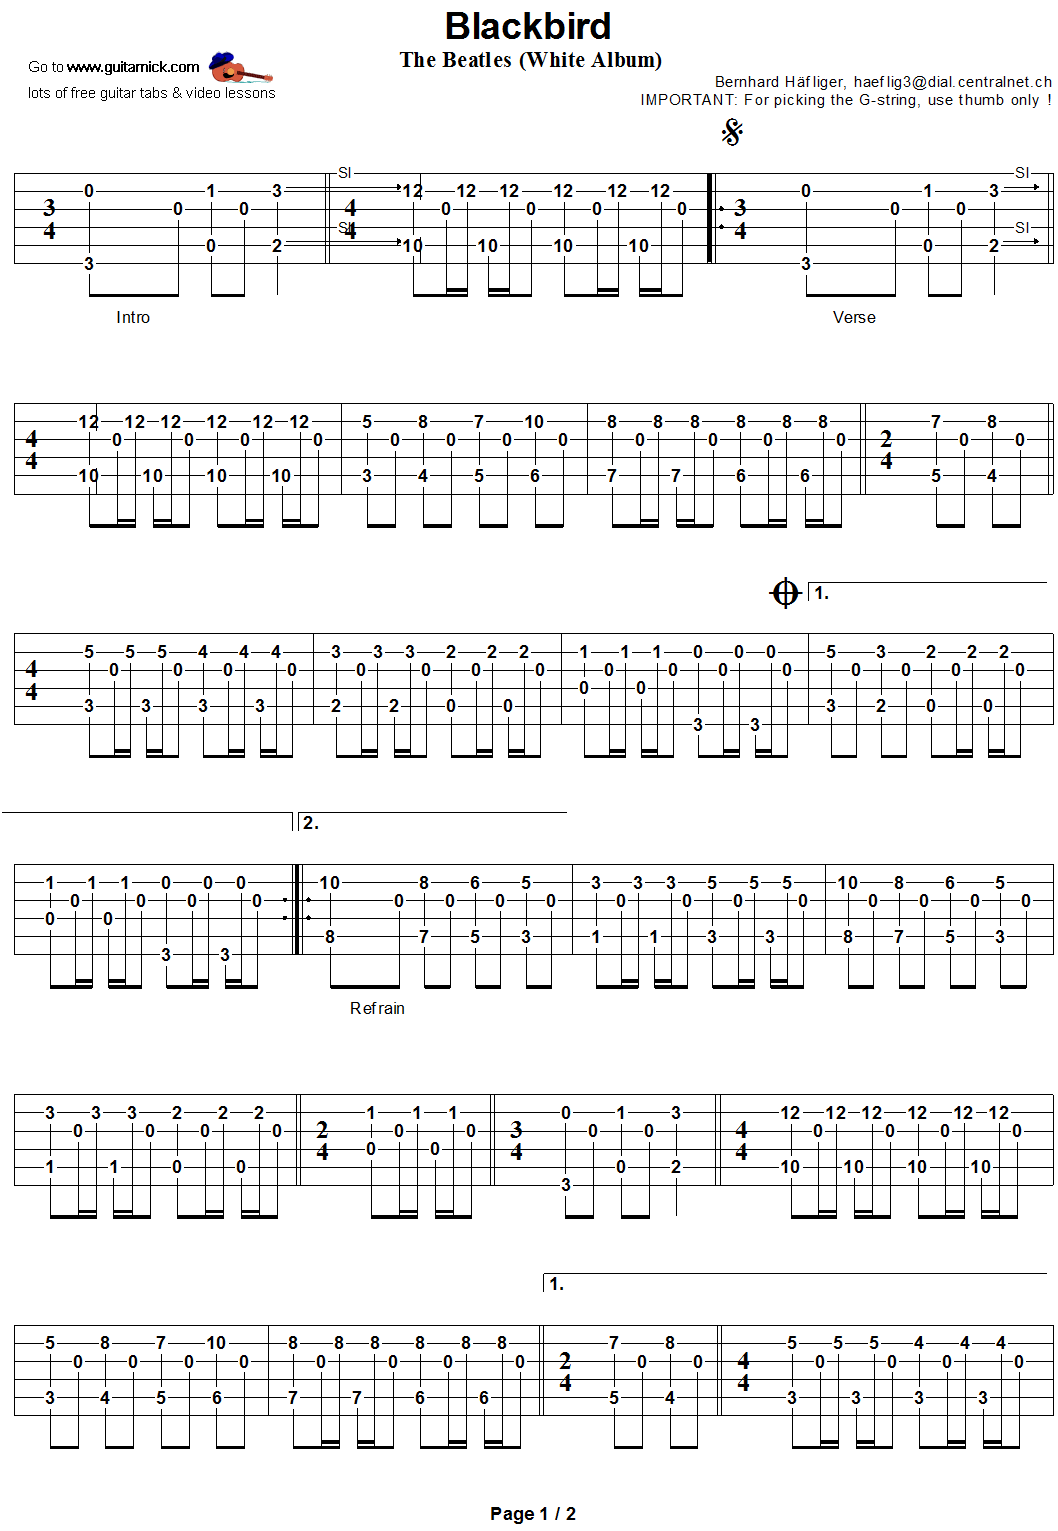 Blackbird - guitar tab 1